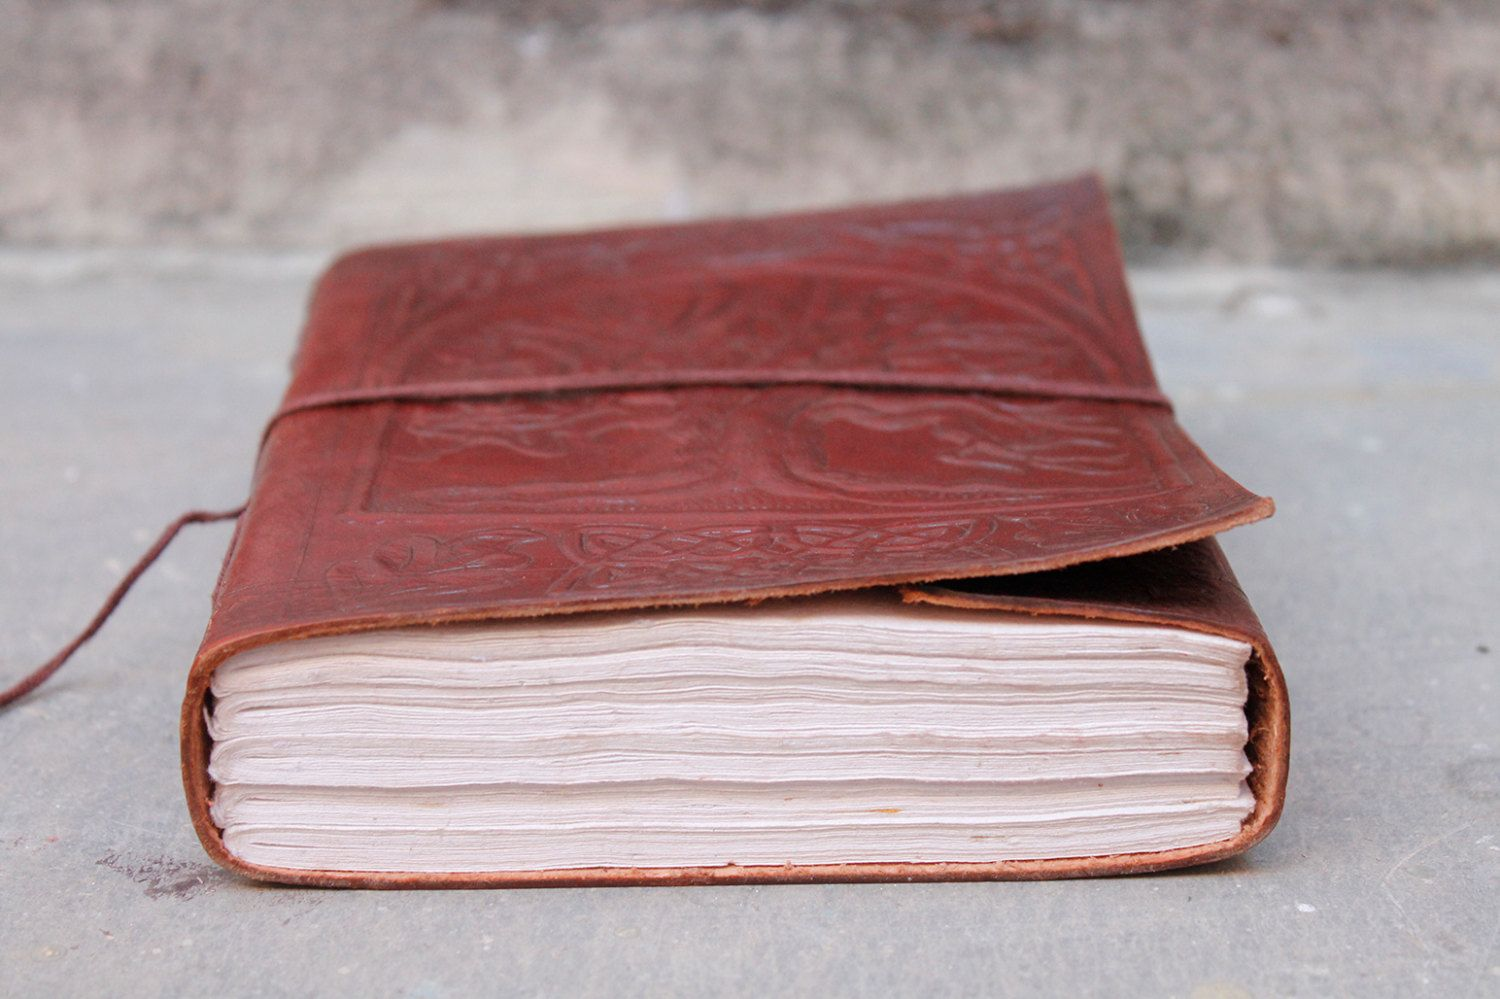 7x5.5 / Handmade Leather Journal / Embossed / by LeatherEuphoria, $29.00